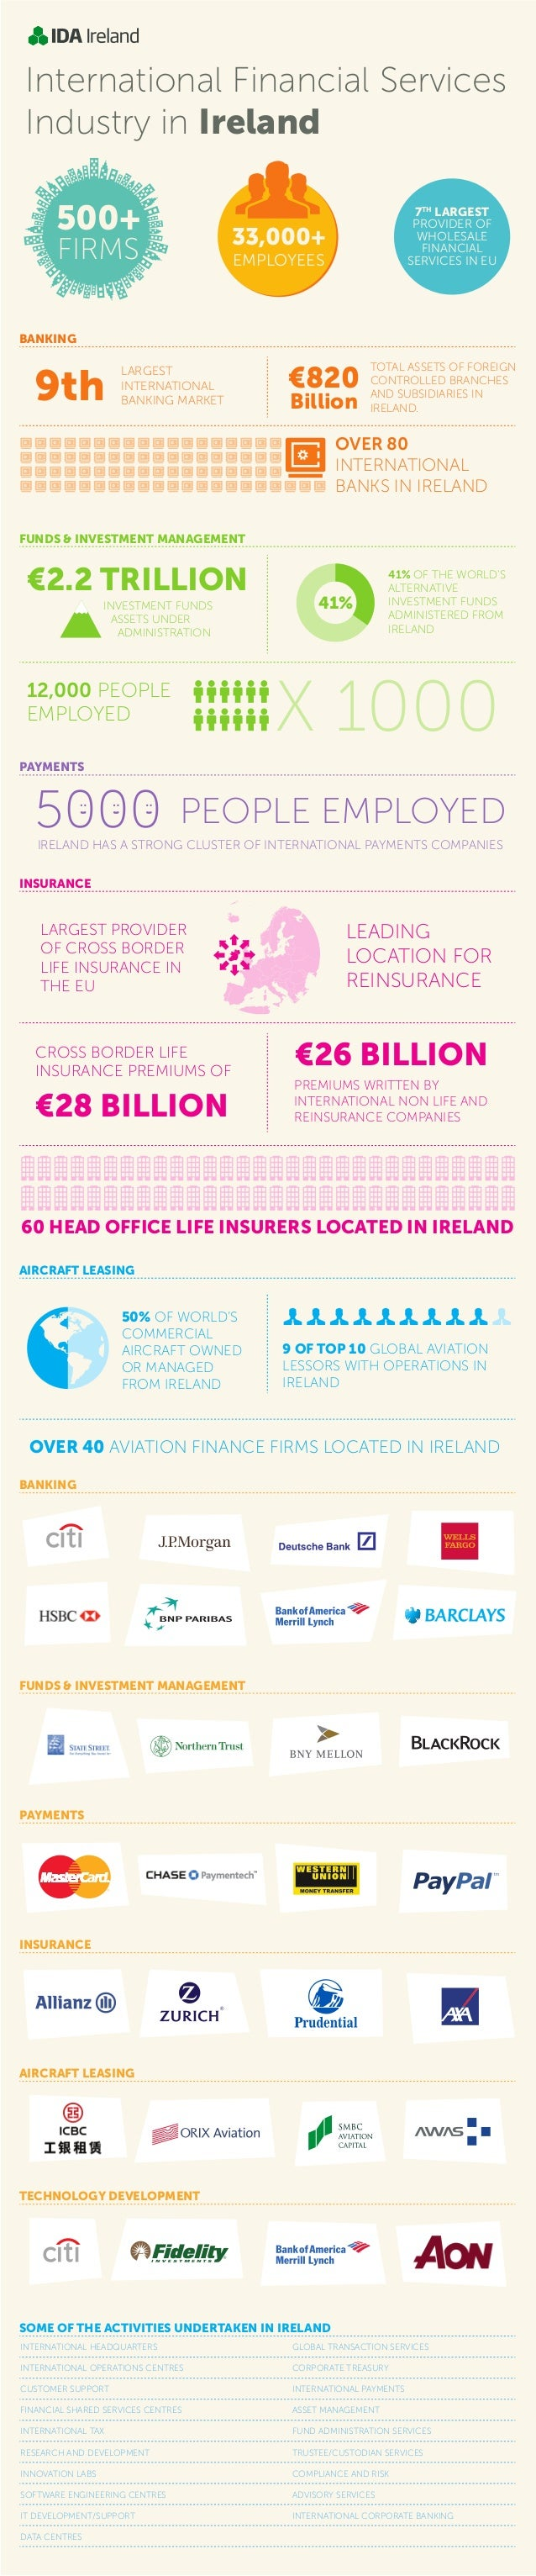 LARGEST PROVIDER OF CROSS BORDER LIFE INSURANCE IN THE EU LEADING LOCATION FOR REINSURANCE INTERNATIONAL HEADQUARTERS INTE...